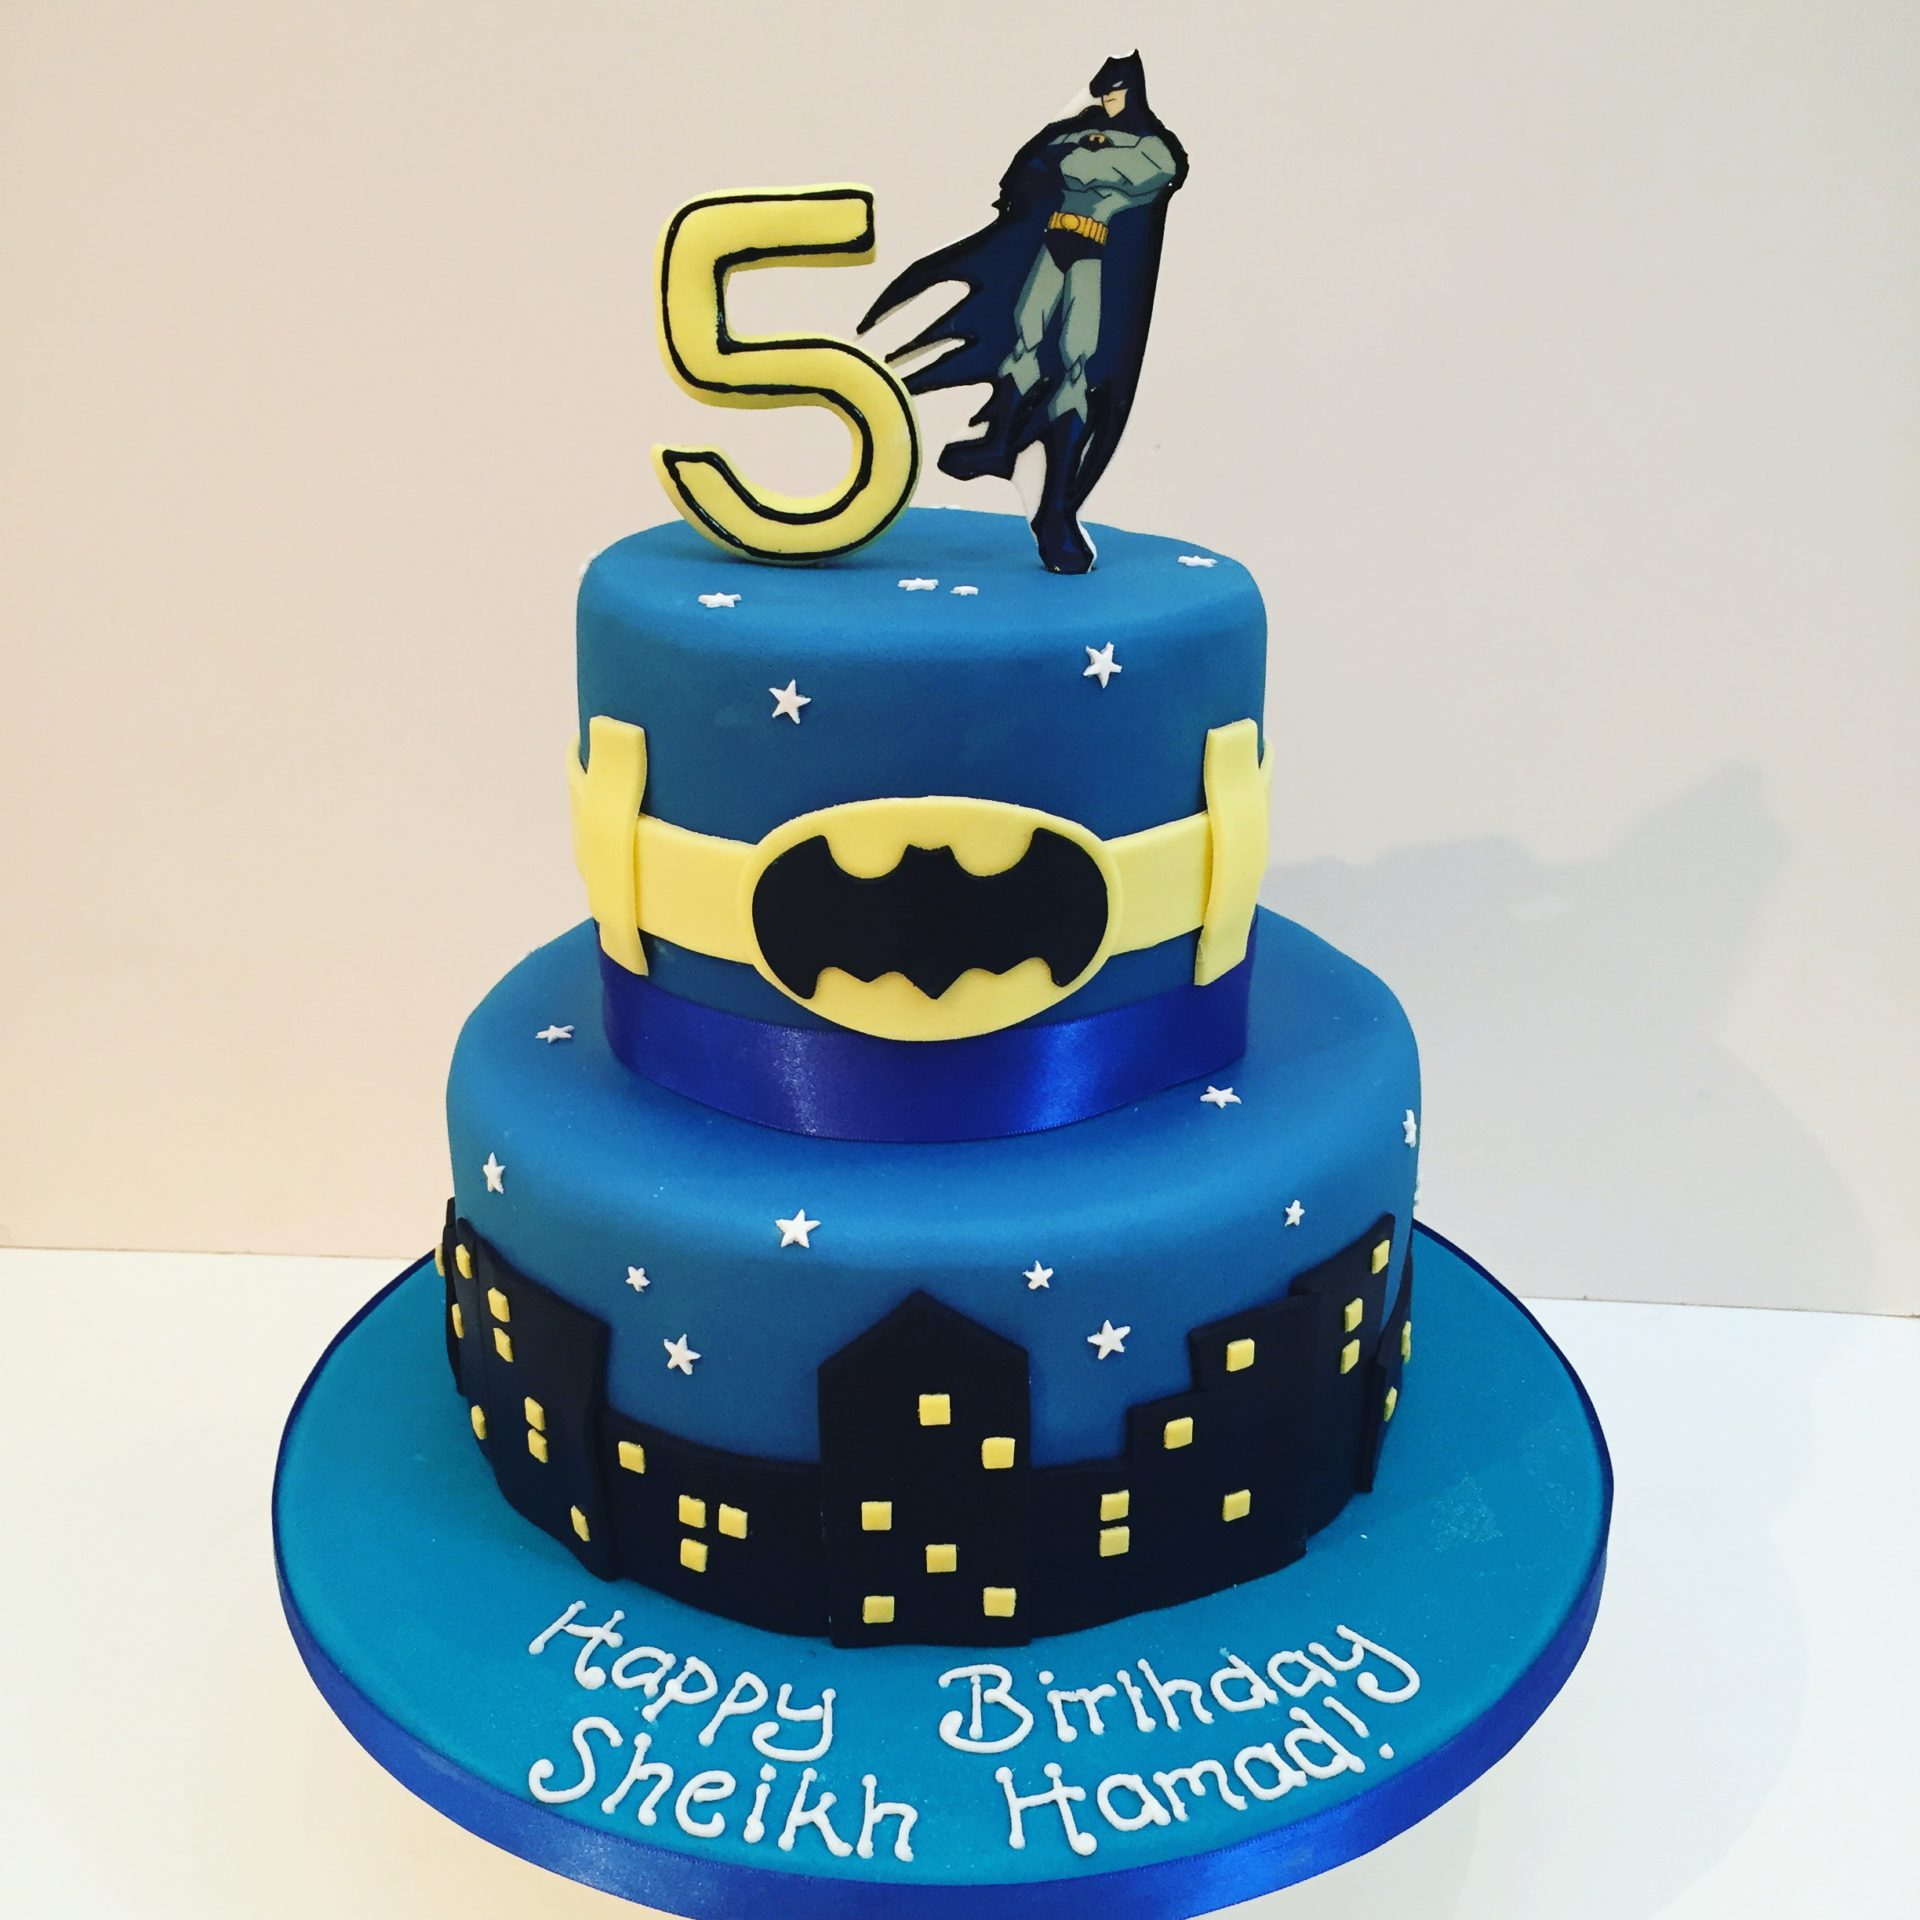 Remarkable Batman Cake Etoile Bakery Personalised Birthday Cards Veneteletsinfo